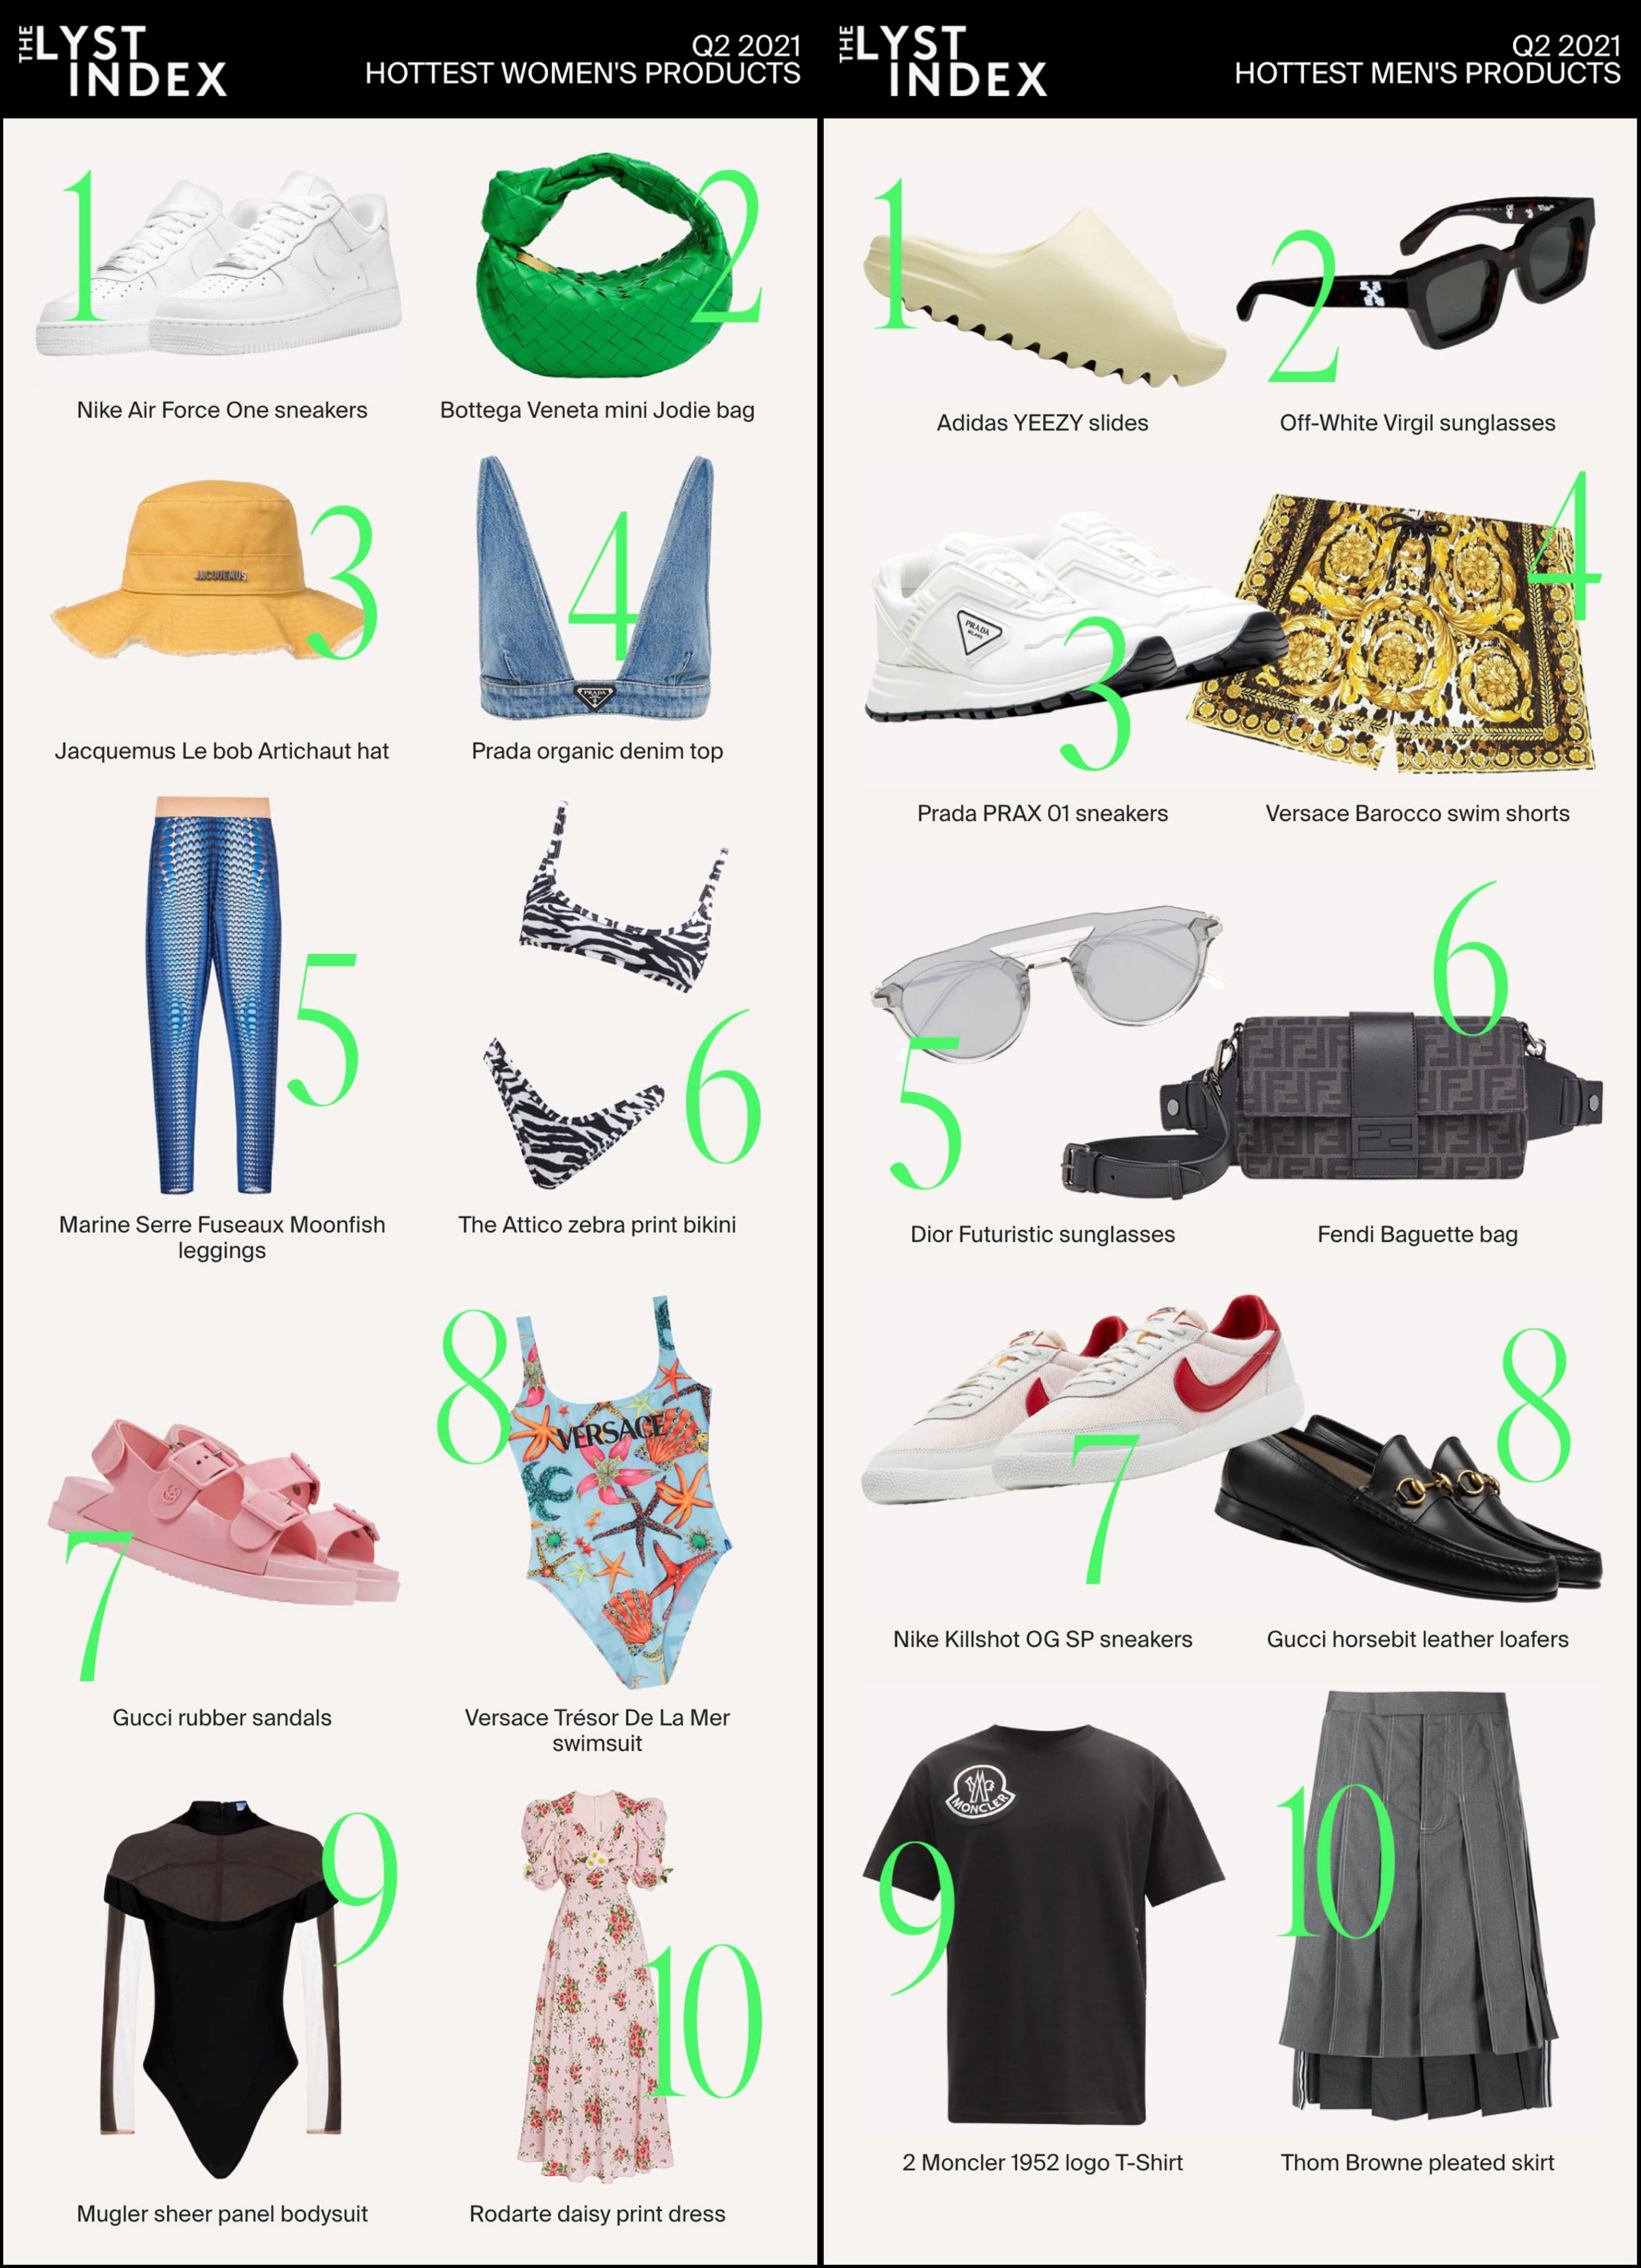 The latest Lyst Index of hottest women's and men's products ranking